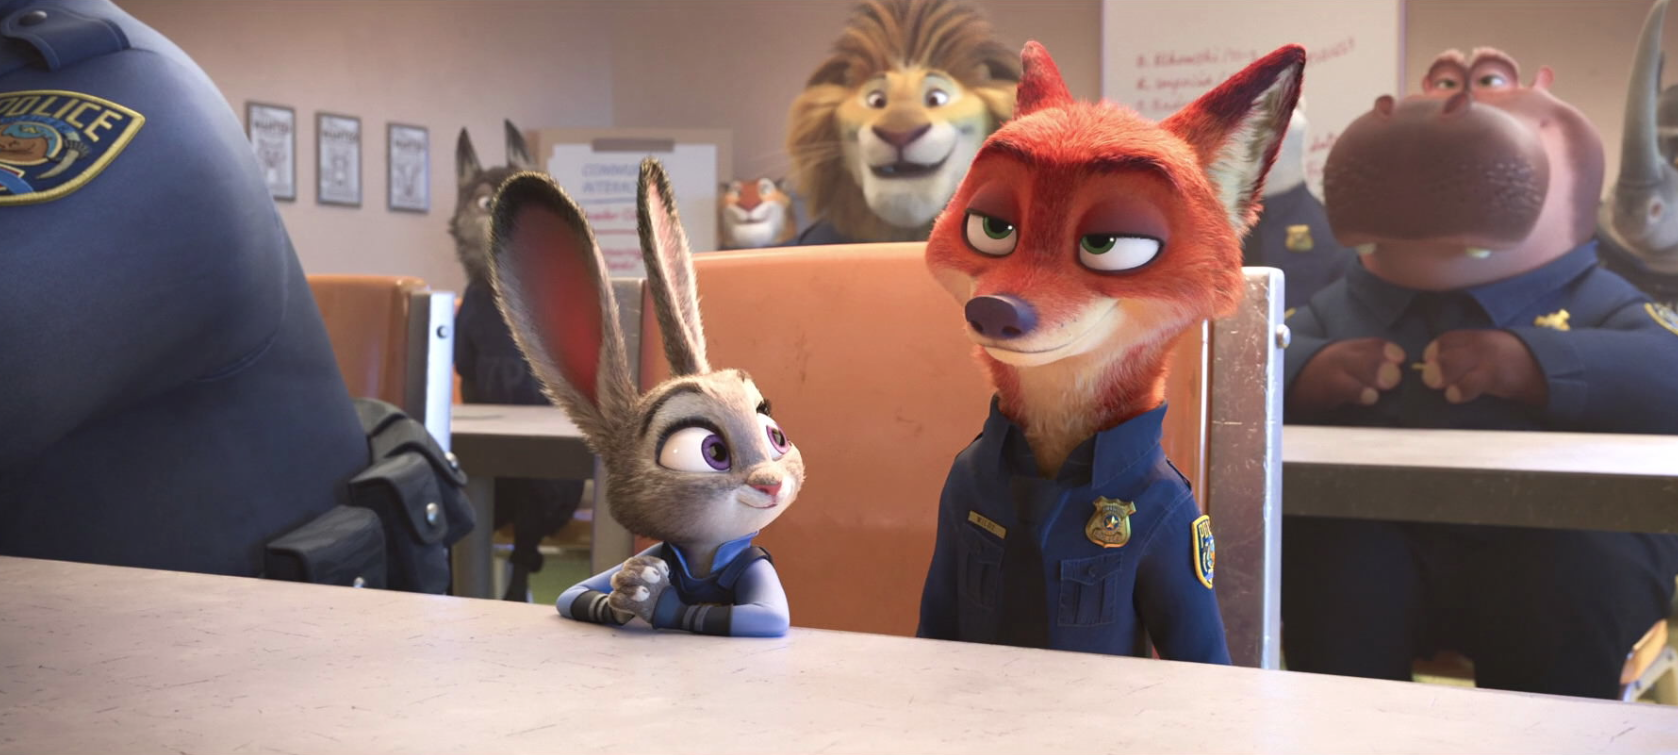 Judy and Nick's relationship | Zootopia Wiki | Fandom